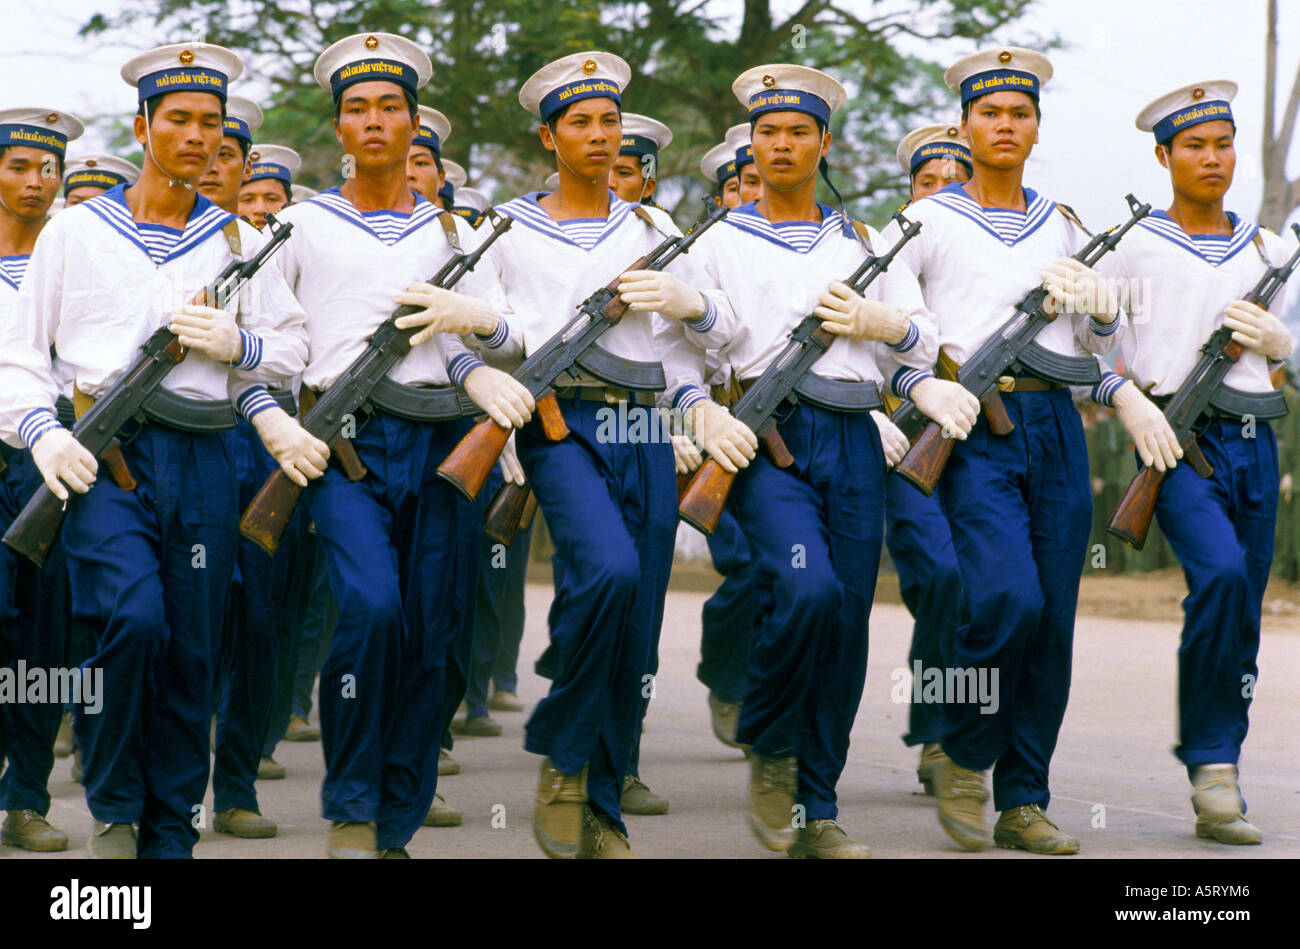 VIETNAM ,THE MARINES MARCHING WITH RIFLES TO MARK THE ENDING OF THE VIETNAM WAR - Stock Image